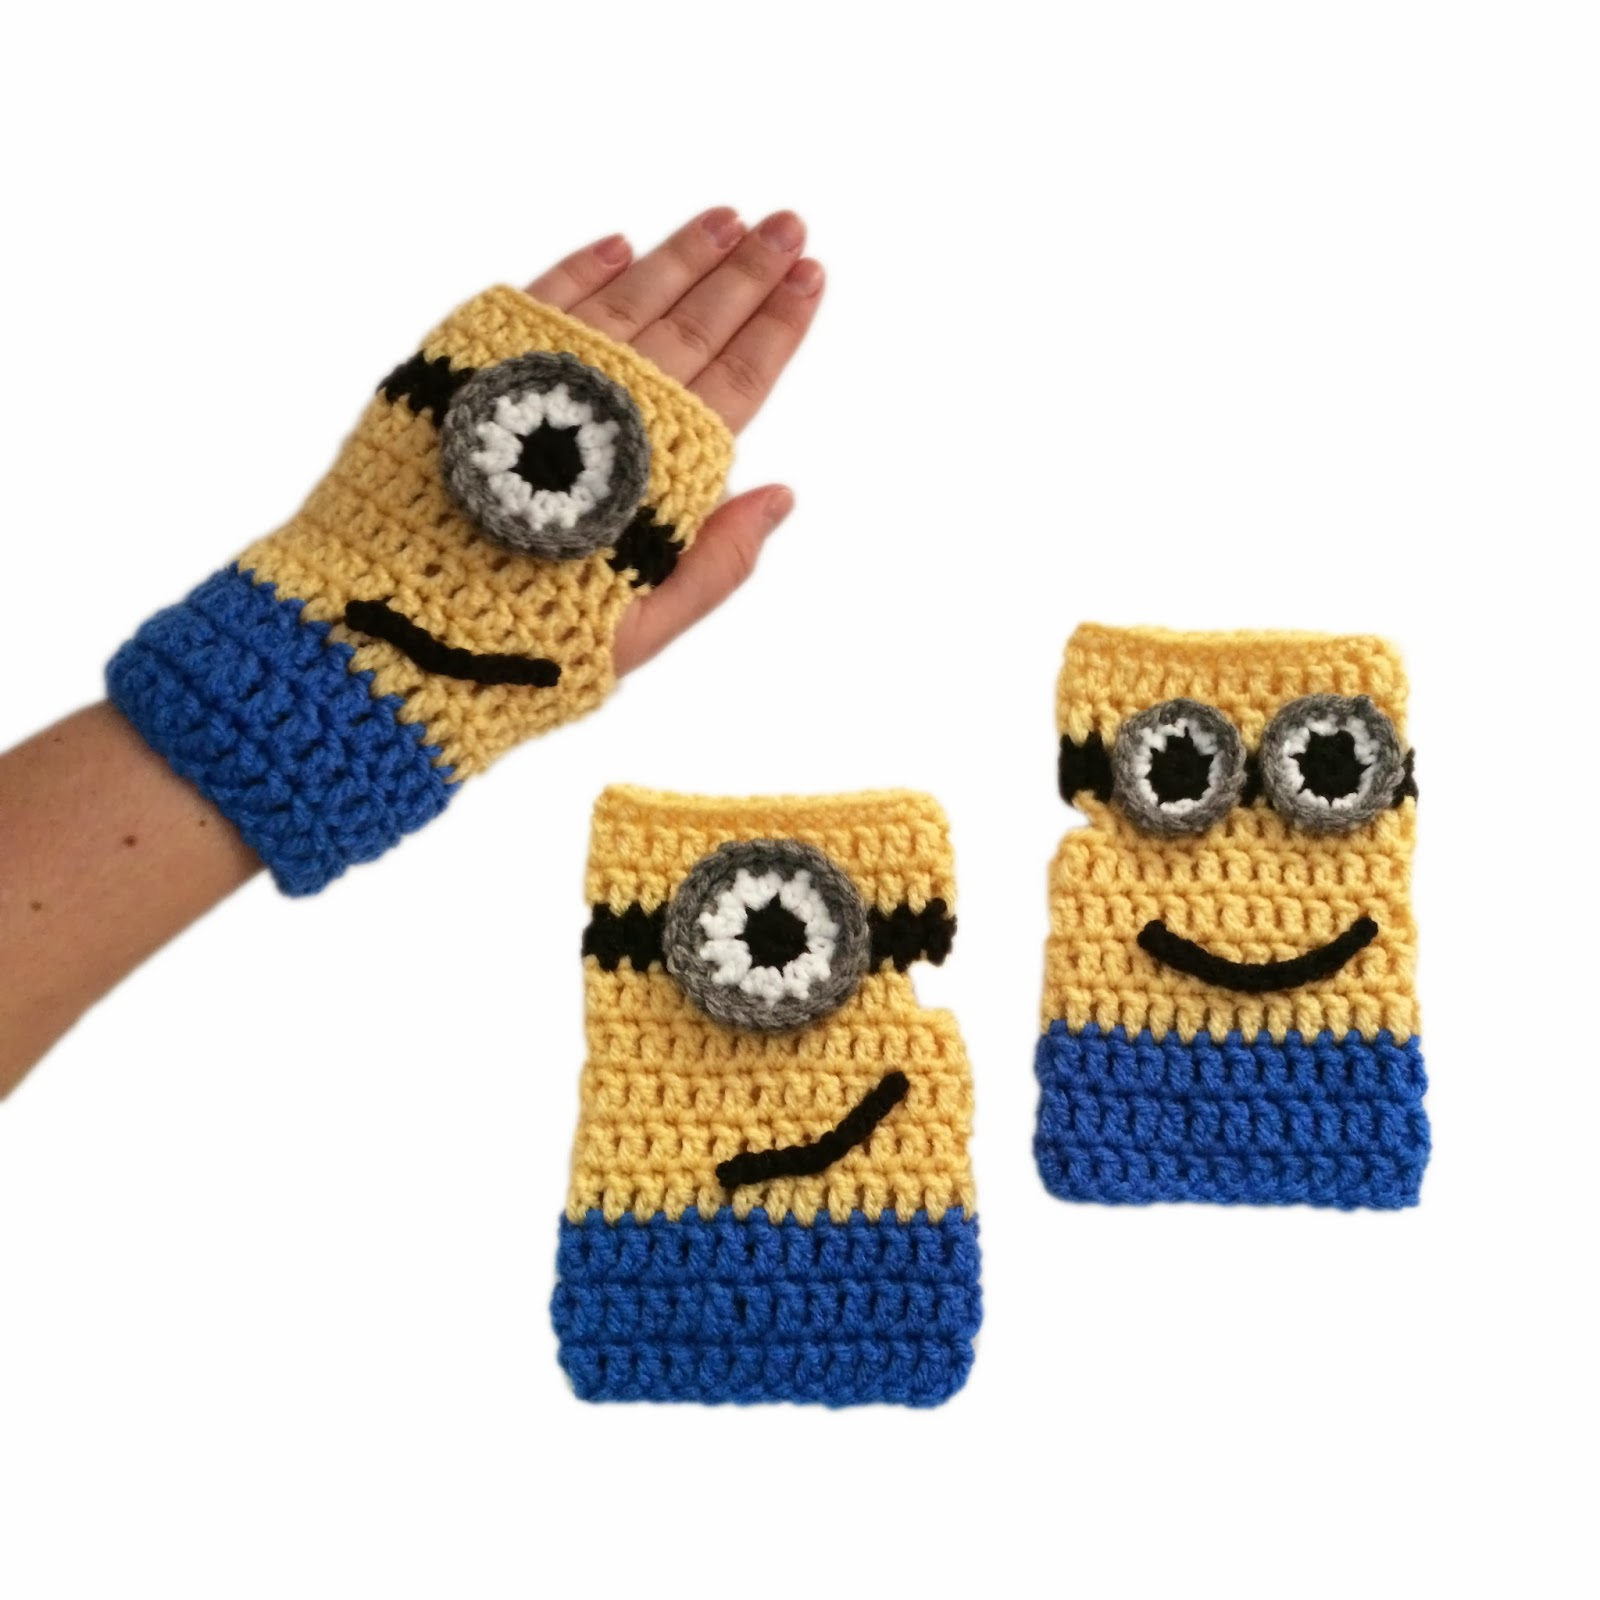 Free Pattern Crochet Minion : Tampa Bay Crochet: Free Crochet Pattern: Minion Mitts